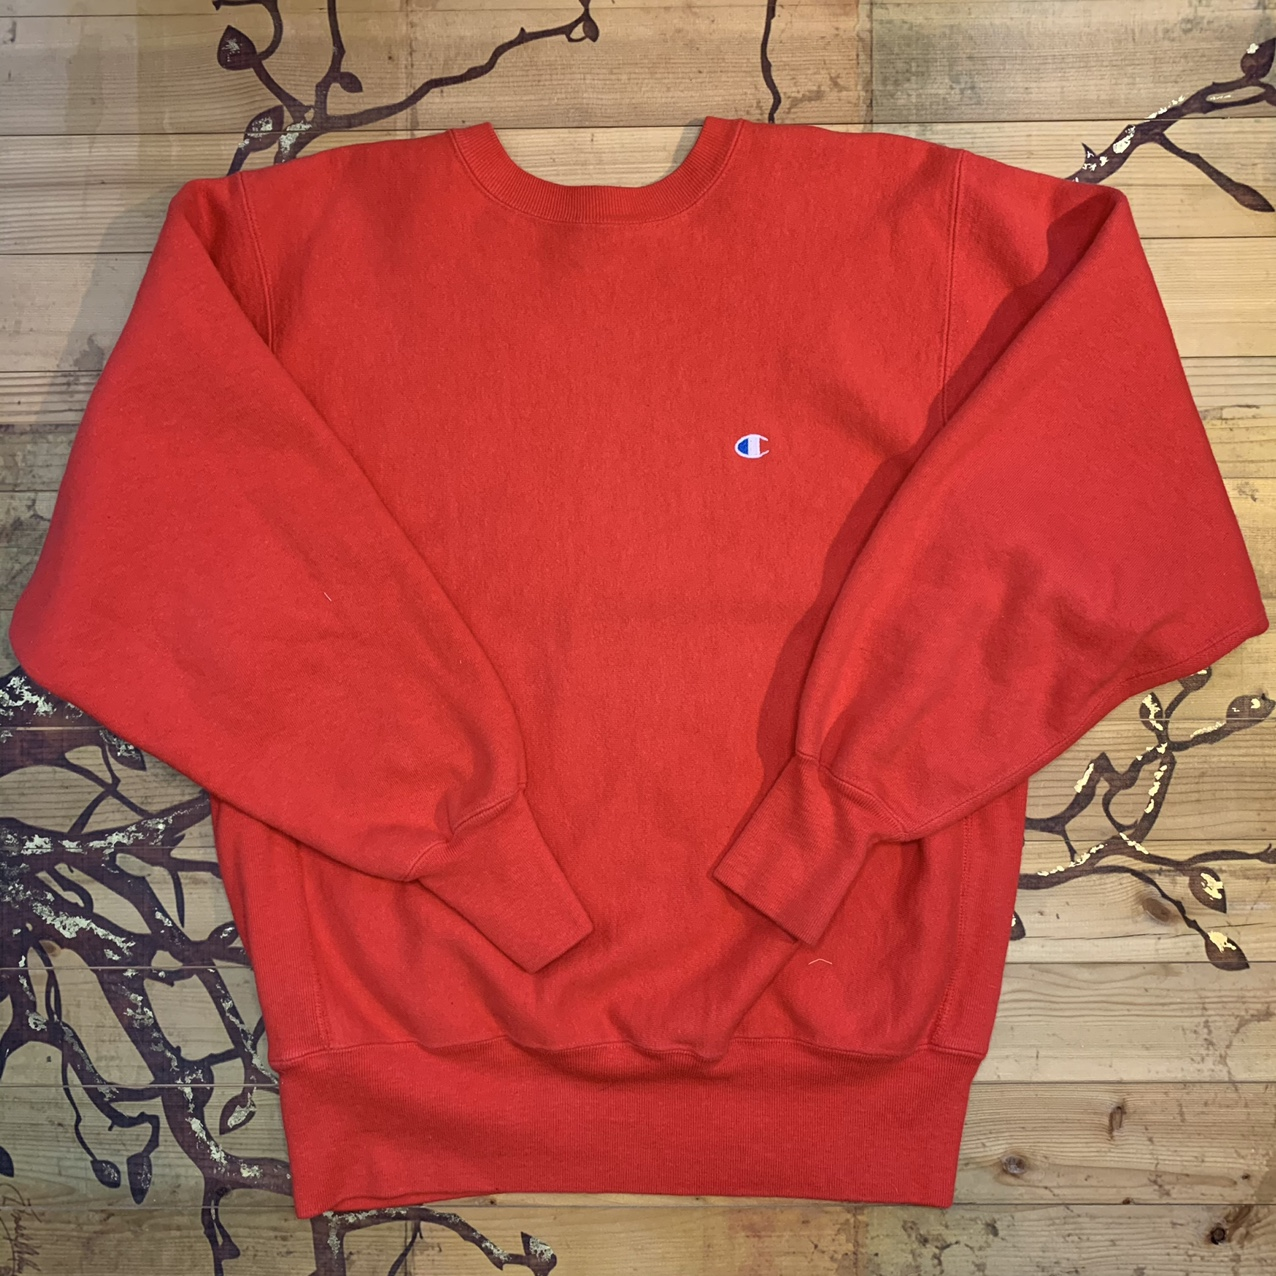 Product Image 1 - Red Champion Sweatshirt THIS IS A